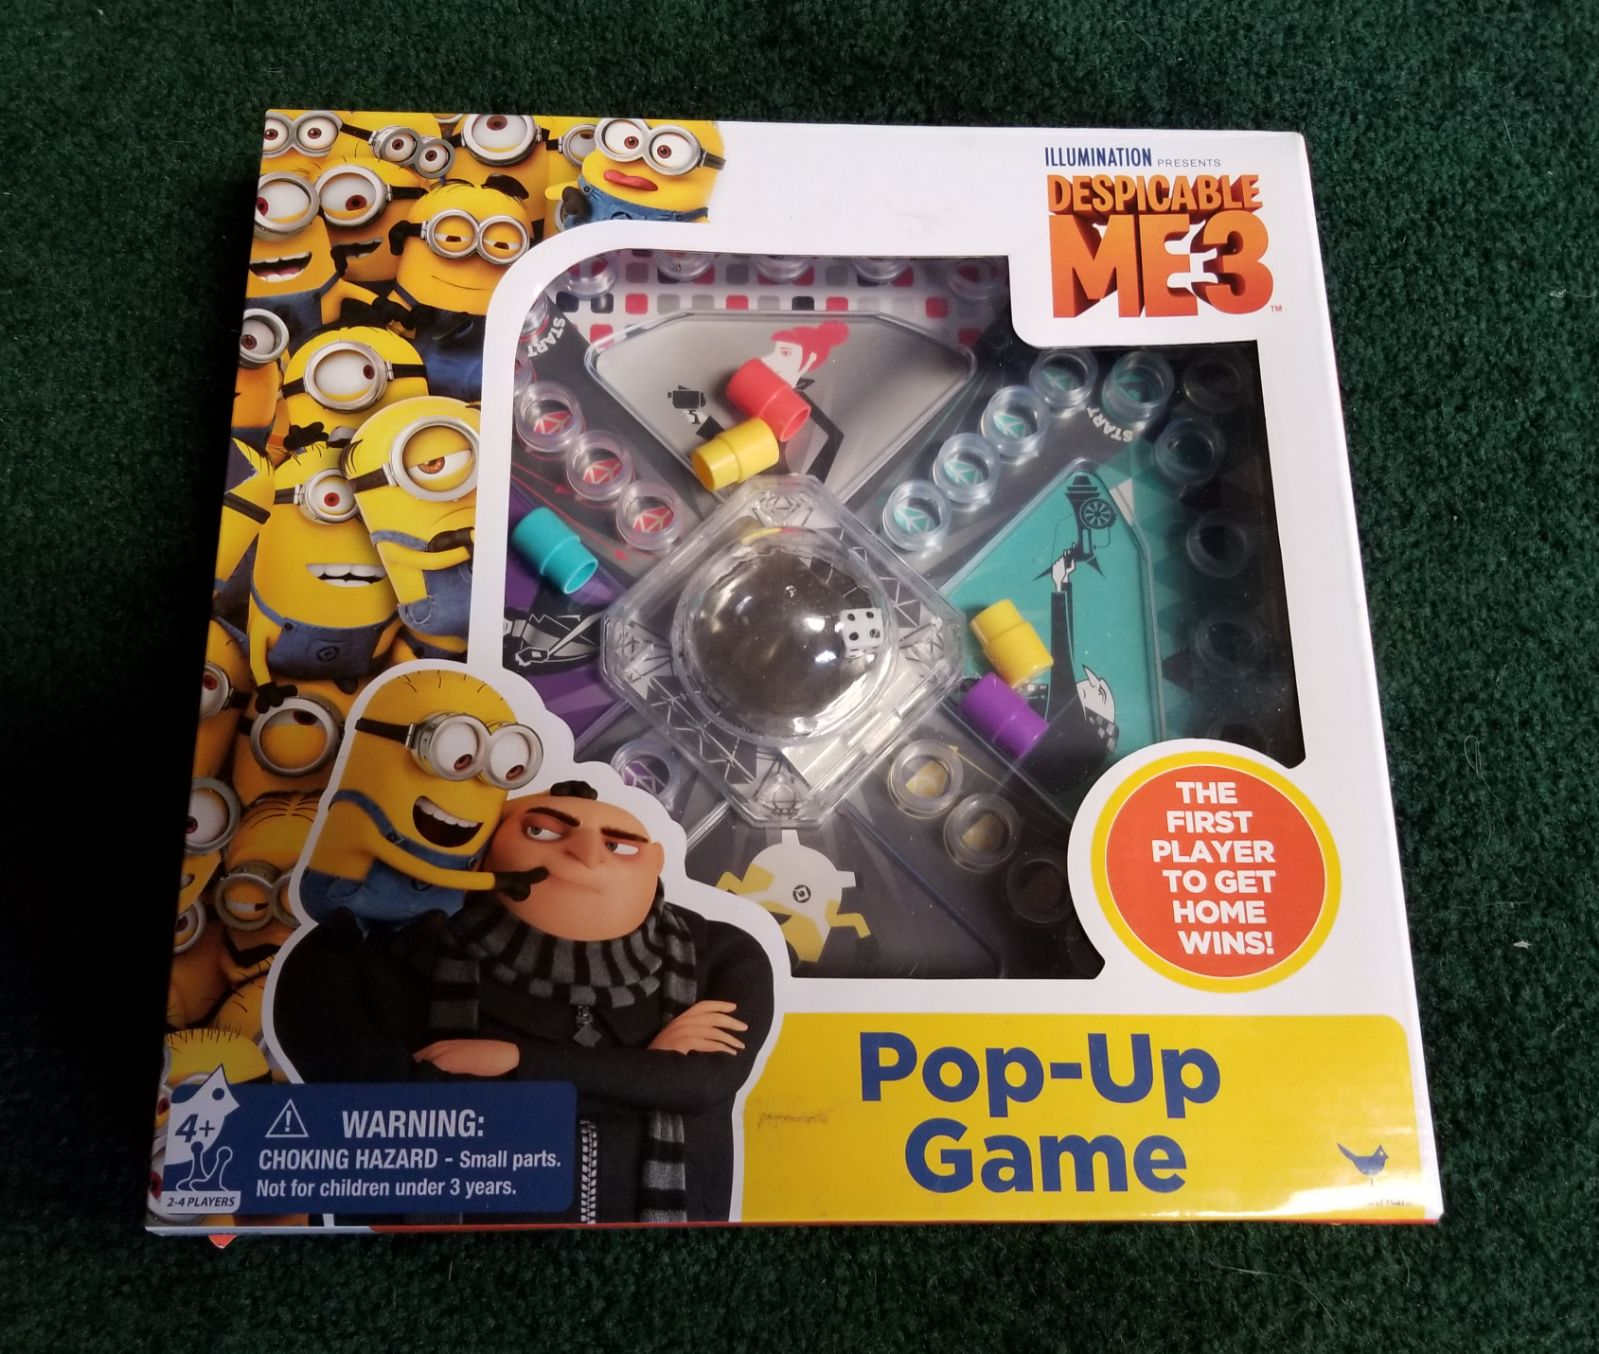 Despicable Me Themed Trouble Game